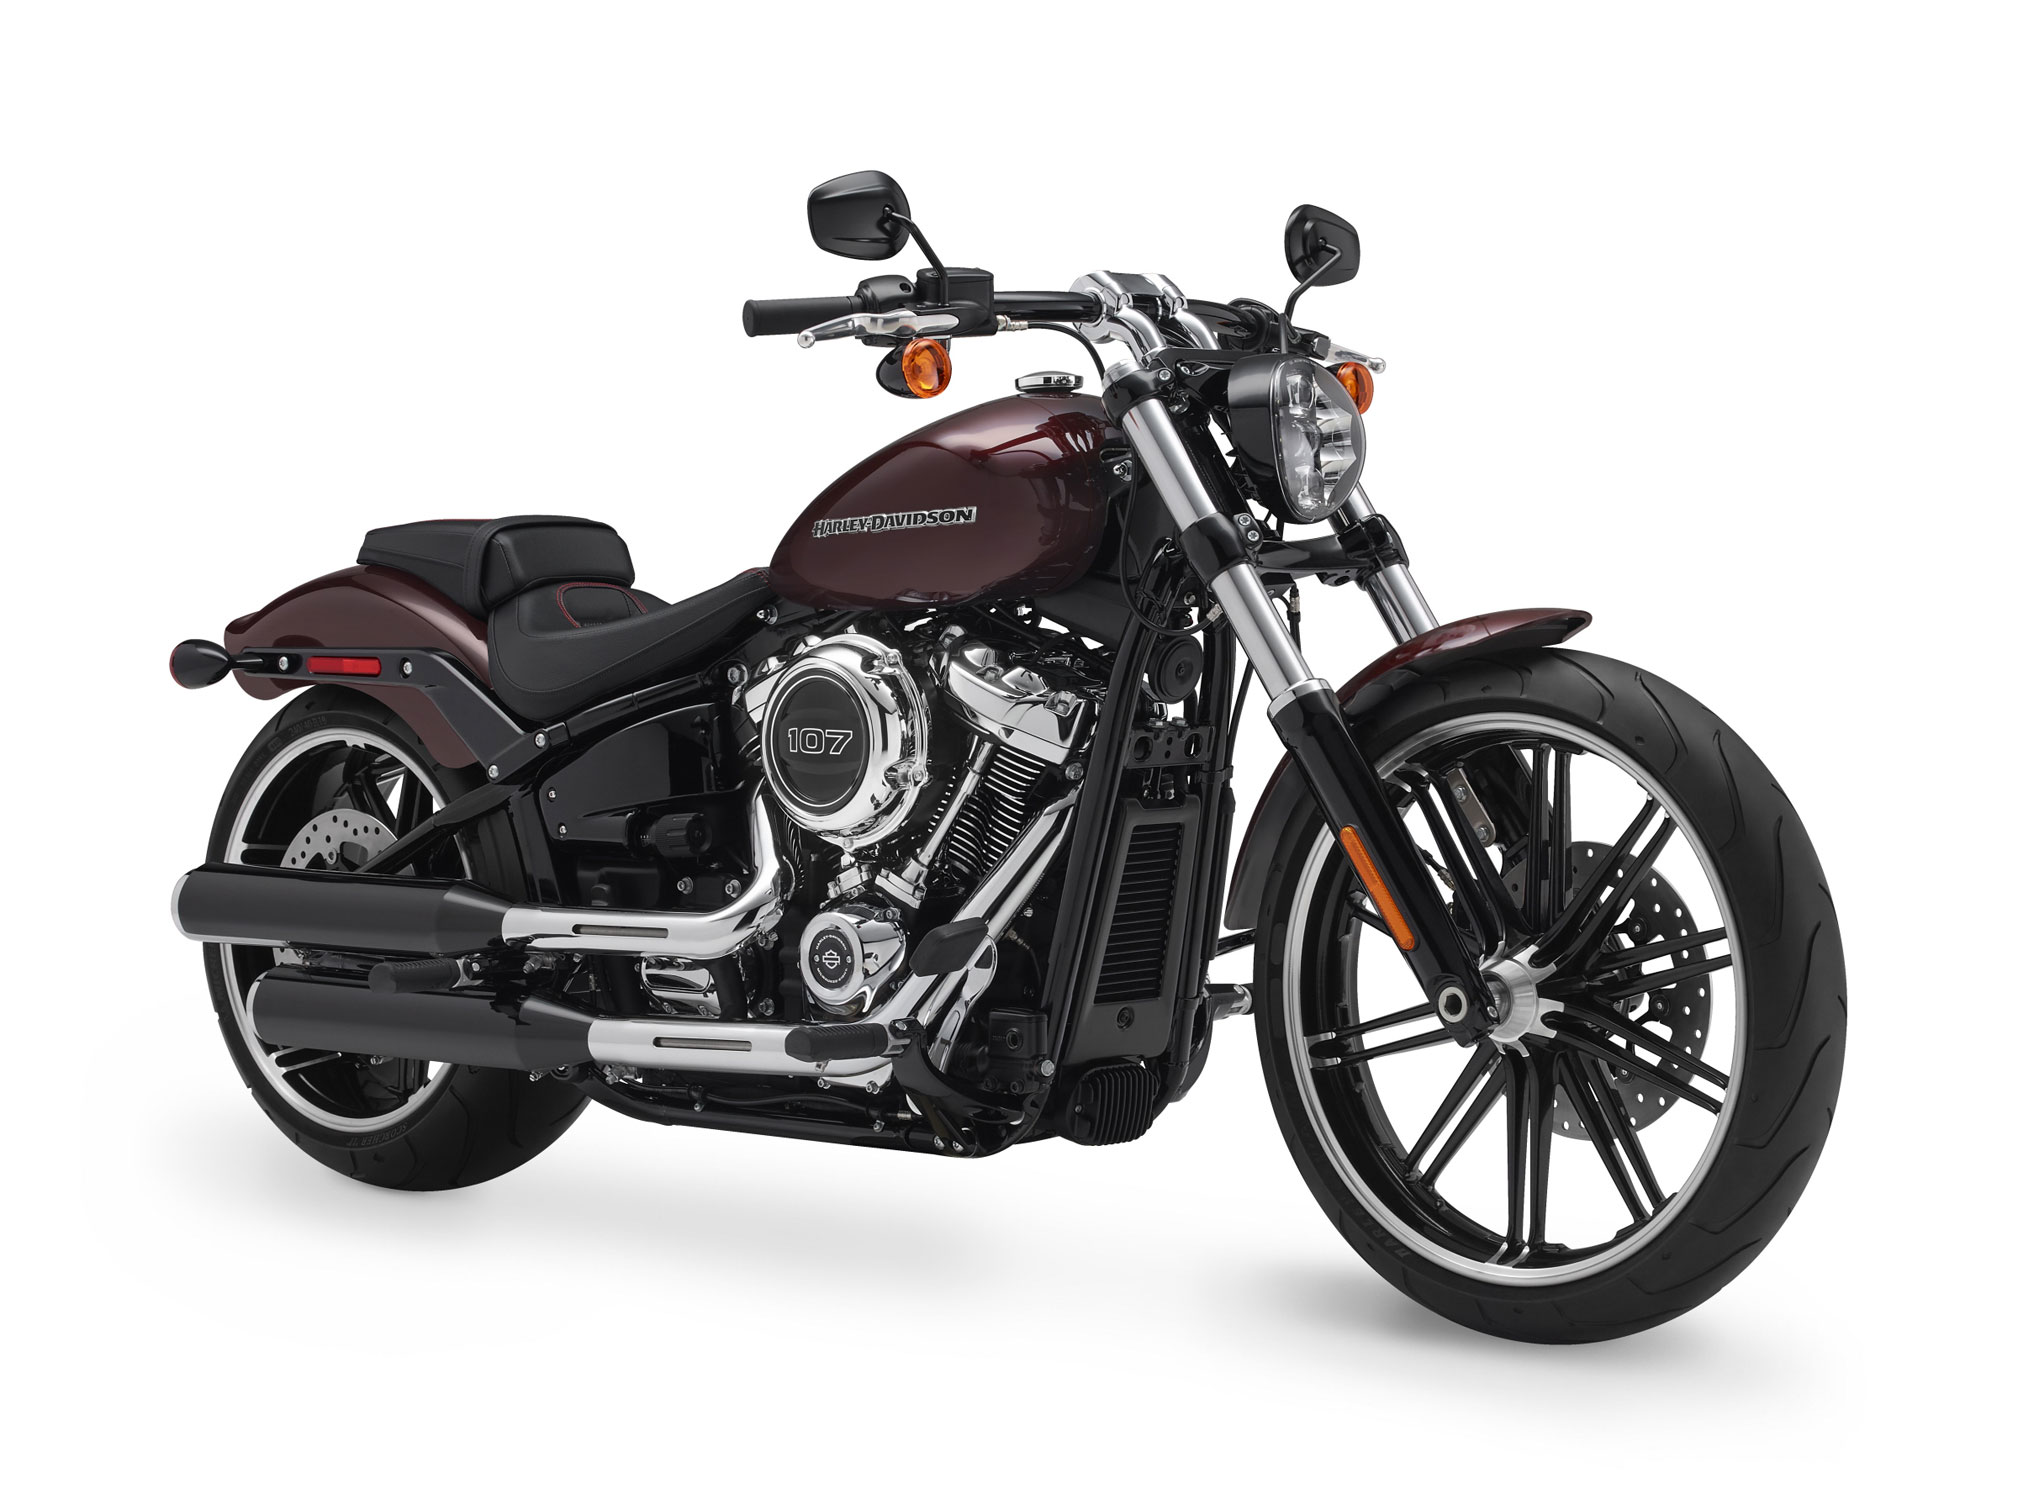 2018 Harley Davidson Breakout Review Totalmotorcycle